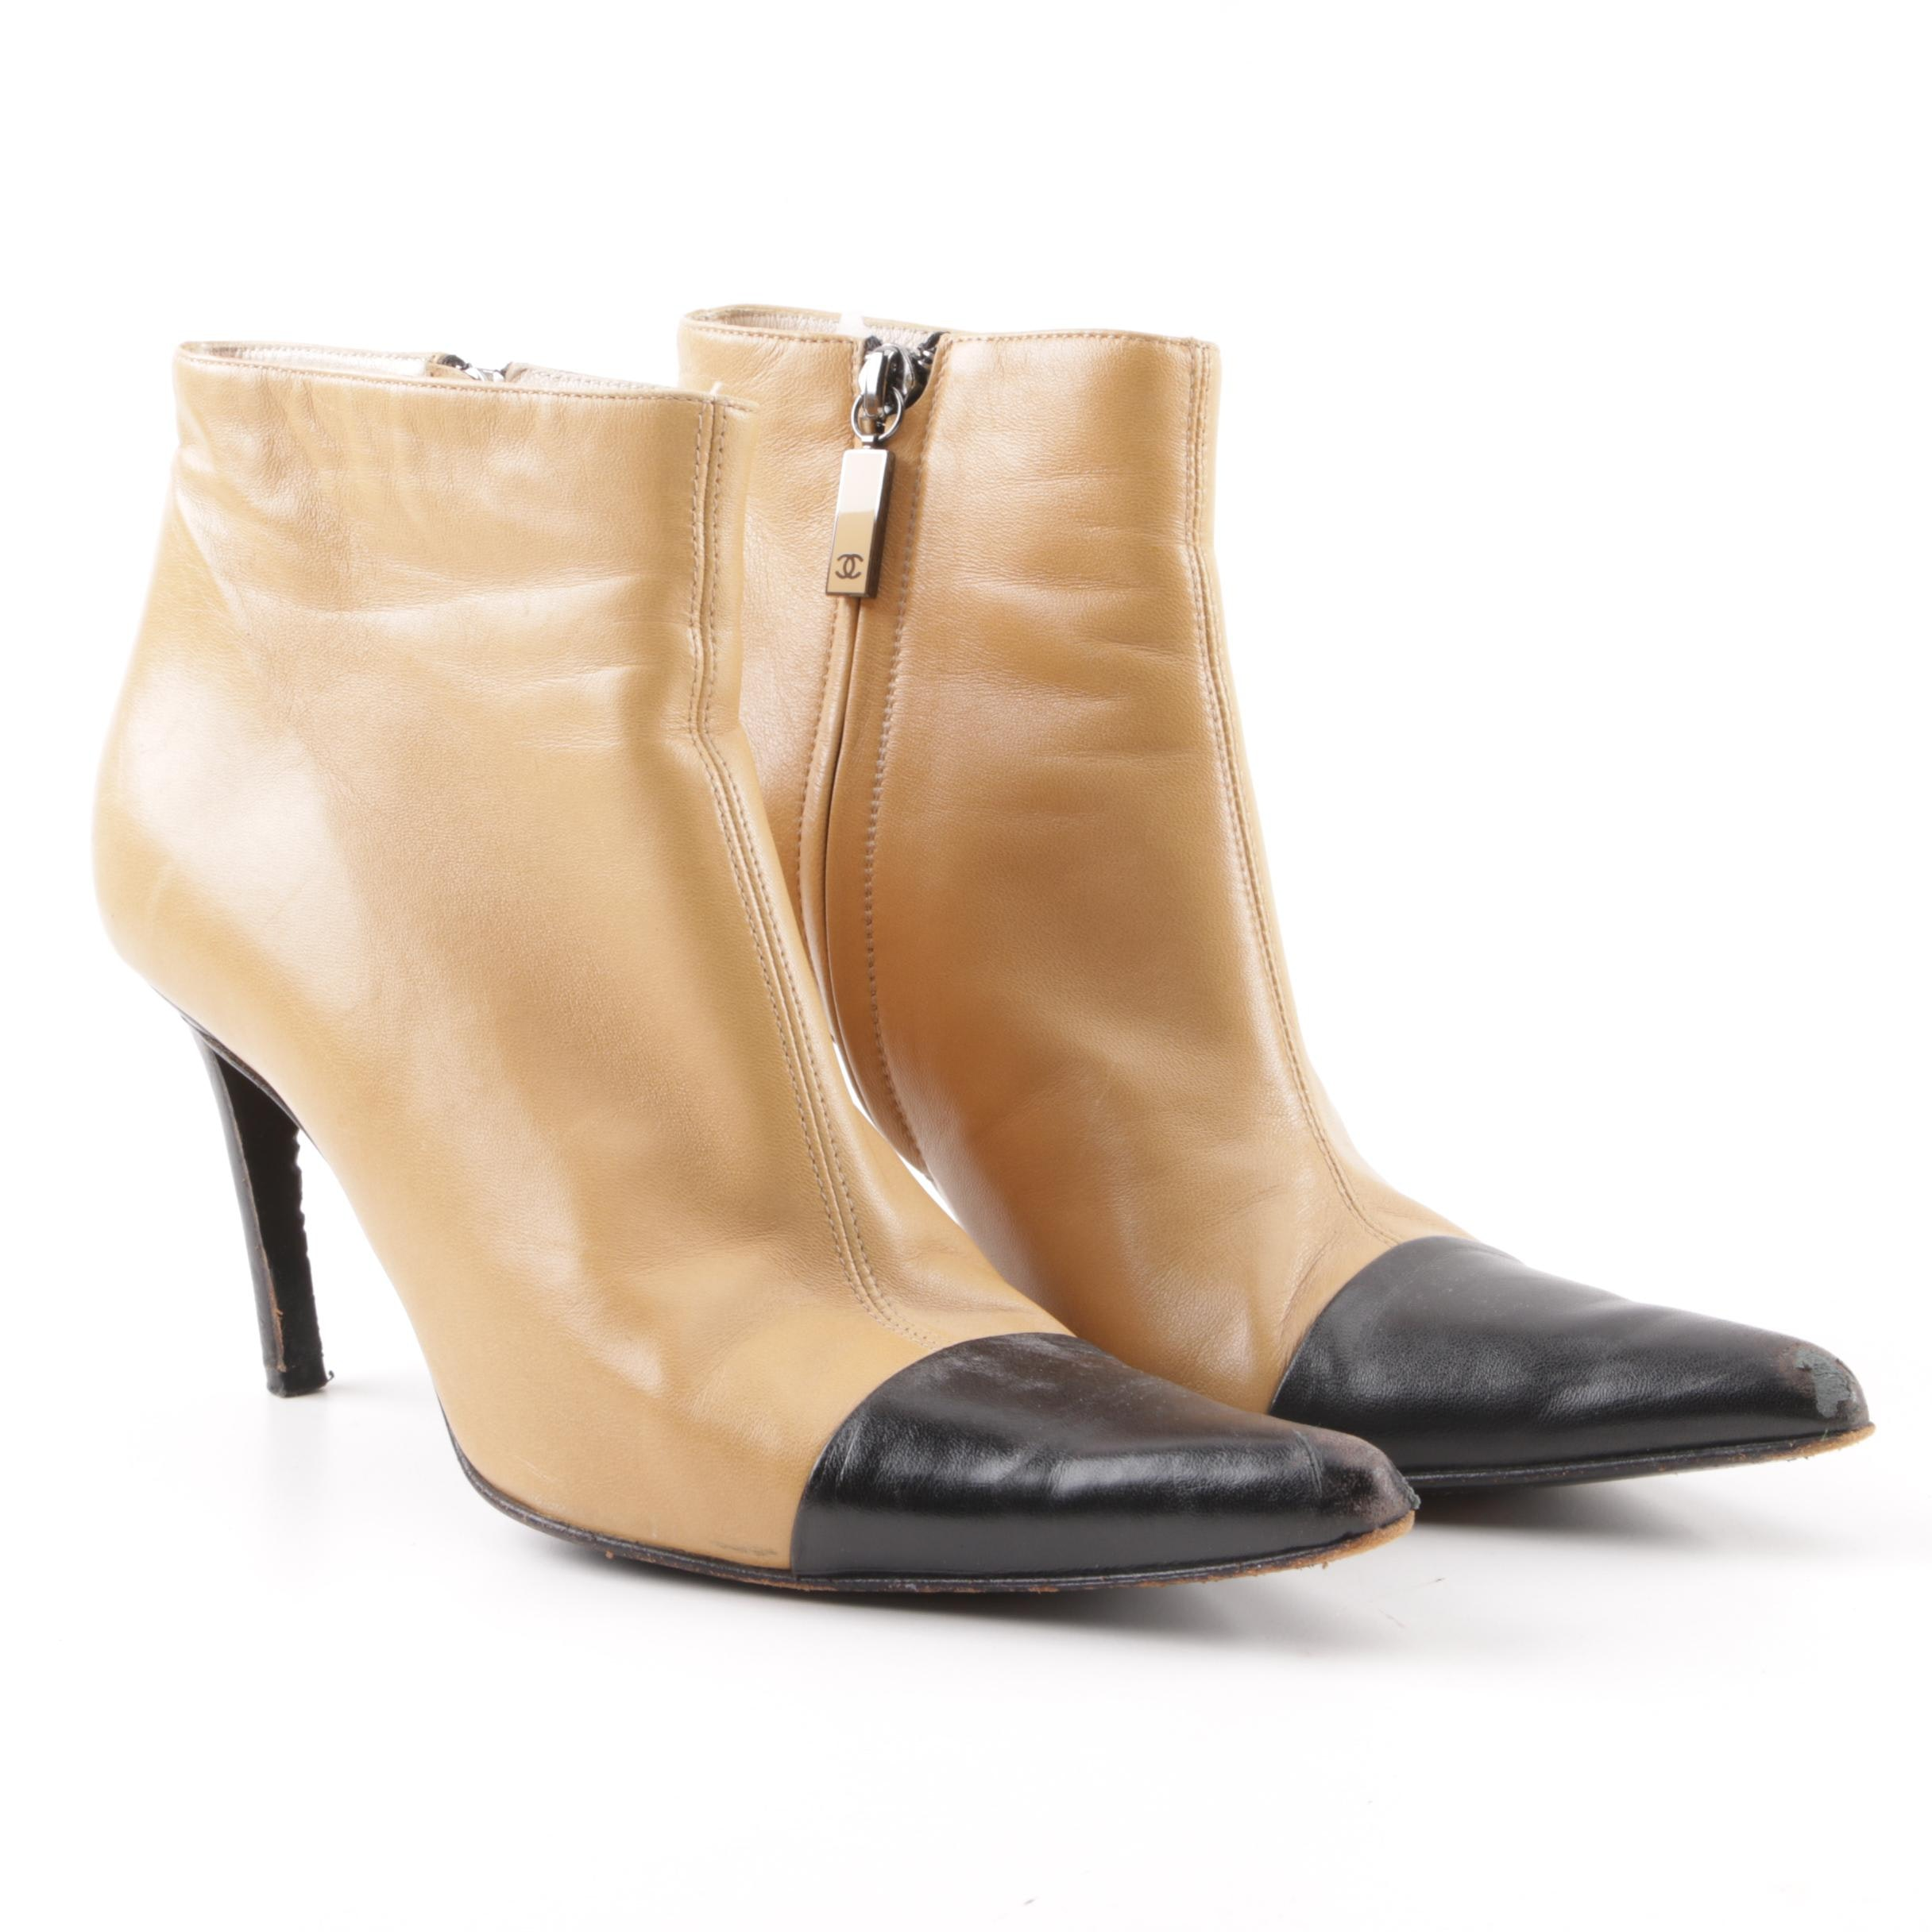 Chanel Two-Tone Black and Camel Color Pointed Capped Toe Booties